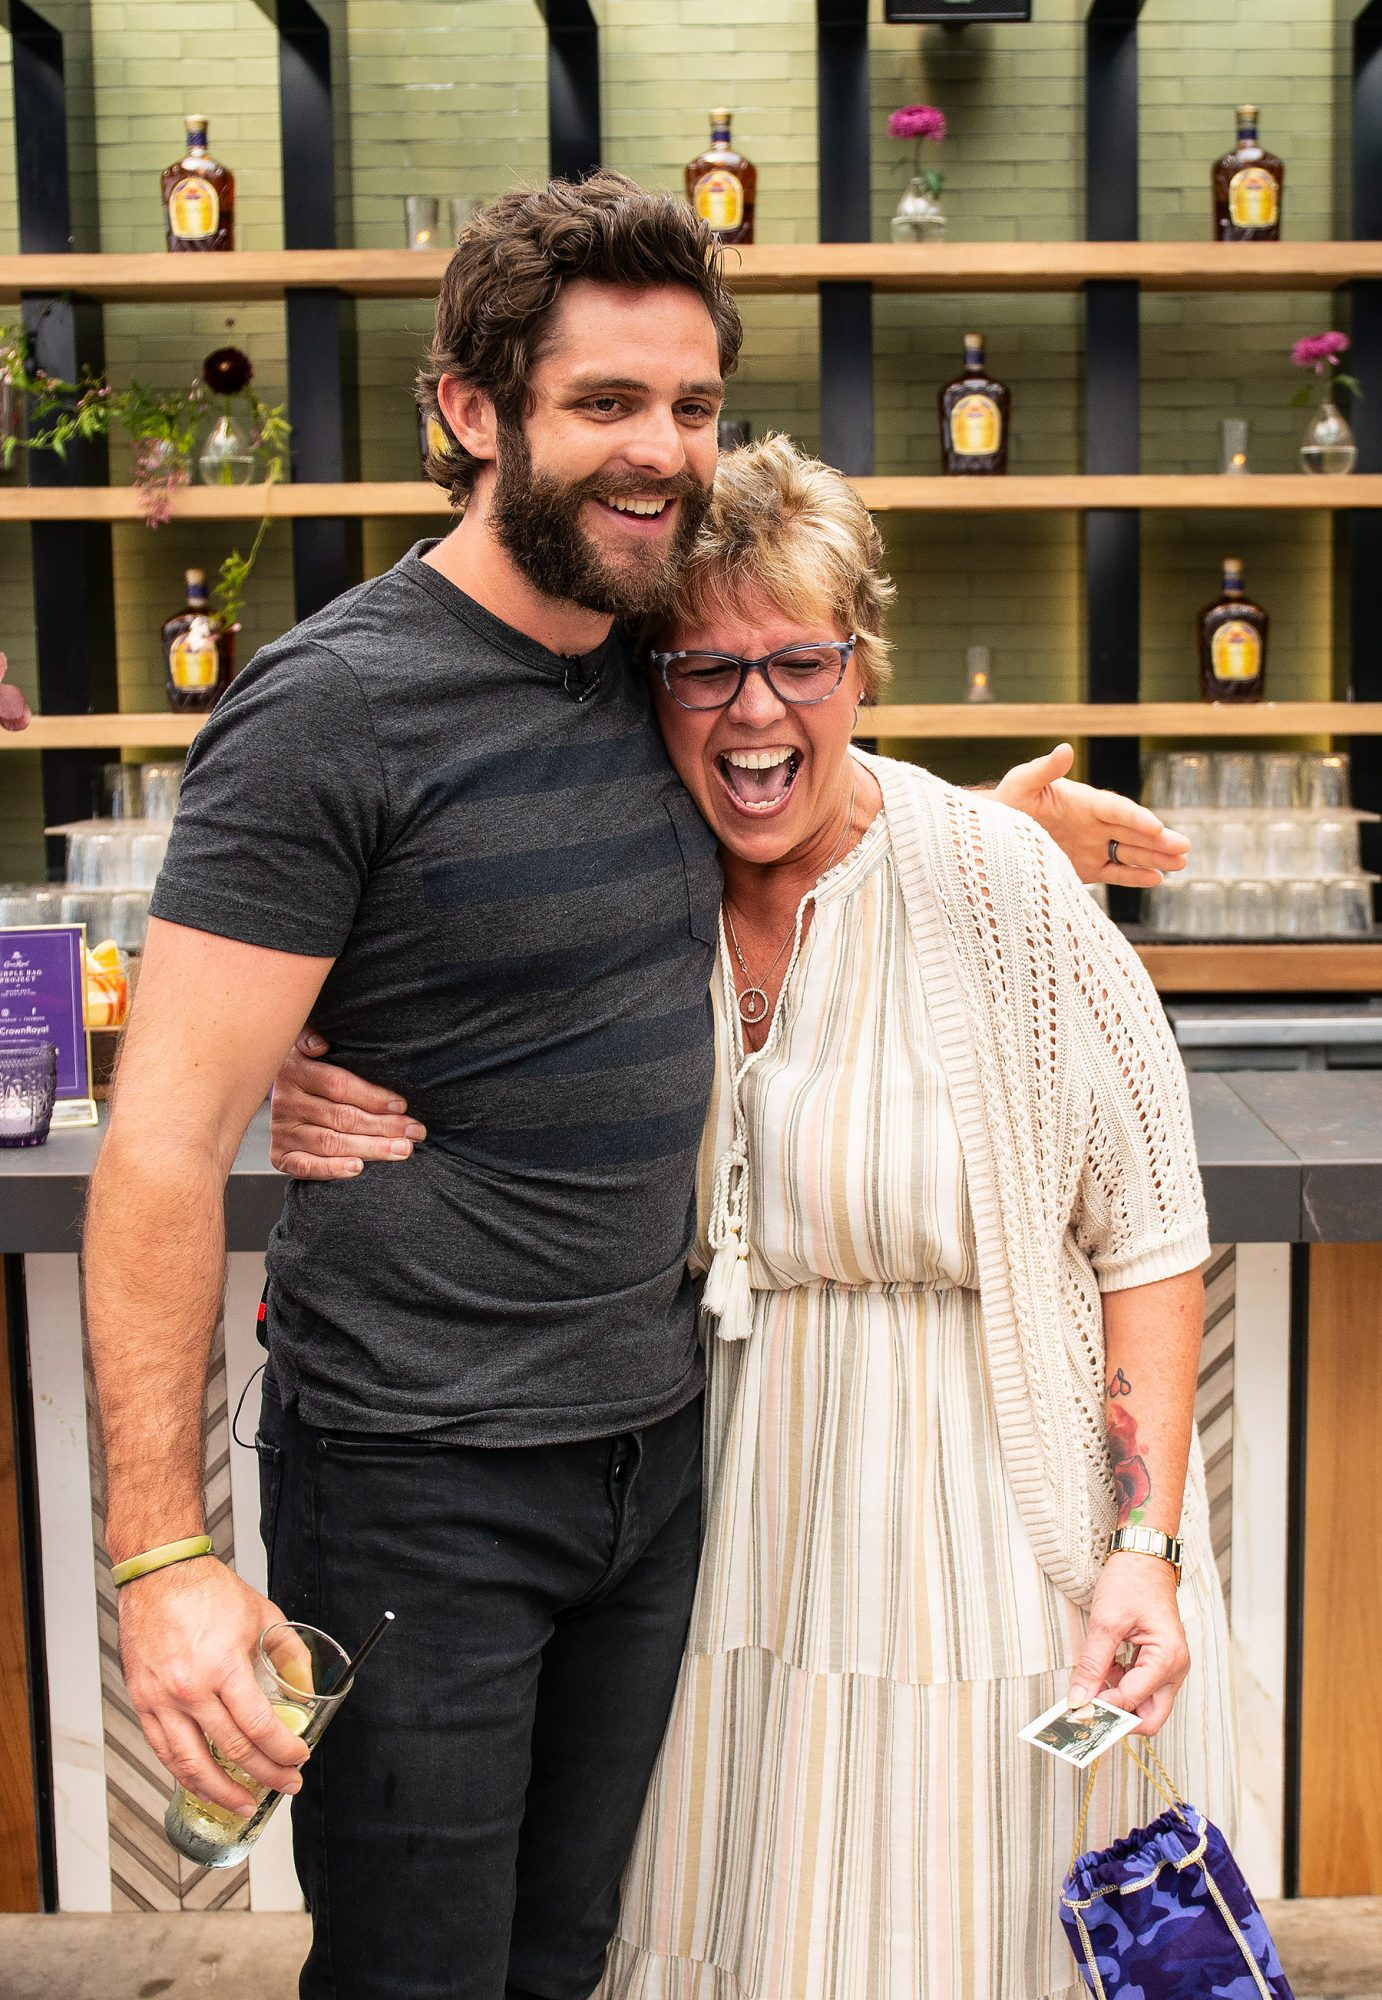 The Purple Bag Project – Mother's Day Brunch with Thomas Rhett in Fort Lauderdale, FL, Saturday, April 13, 2019. (Photo by Jack Dempsey for Crown Royal)